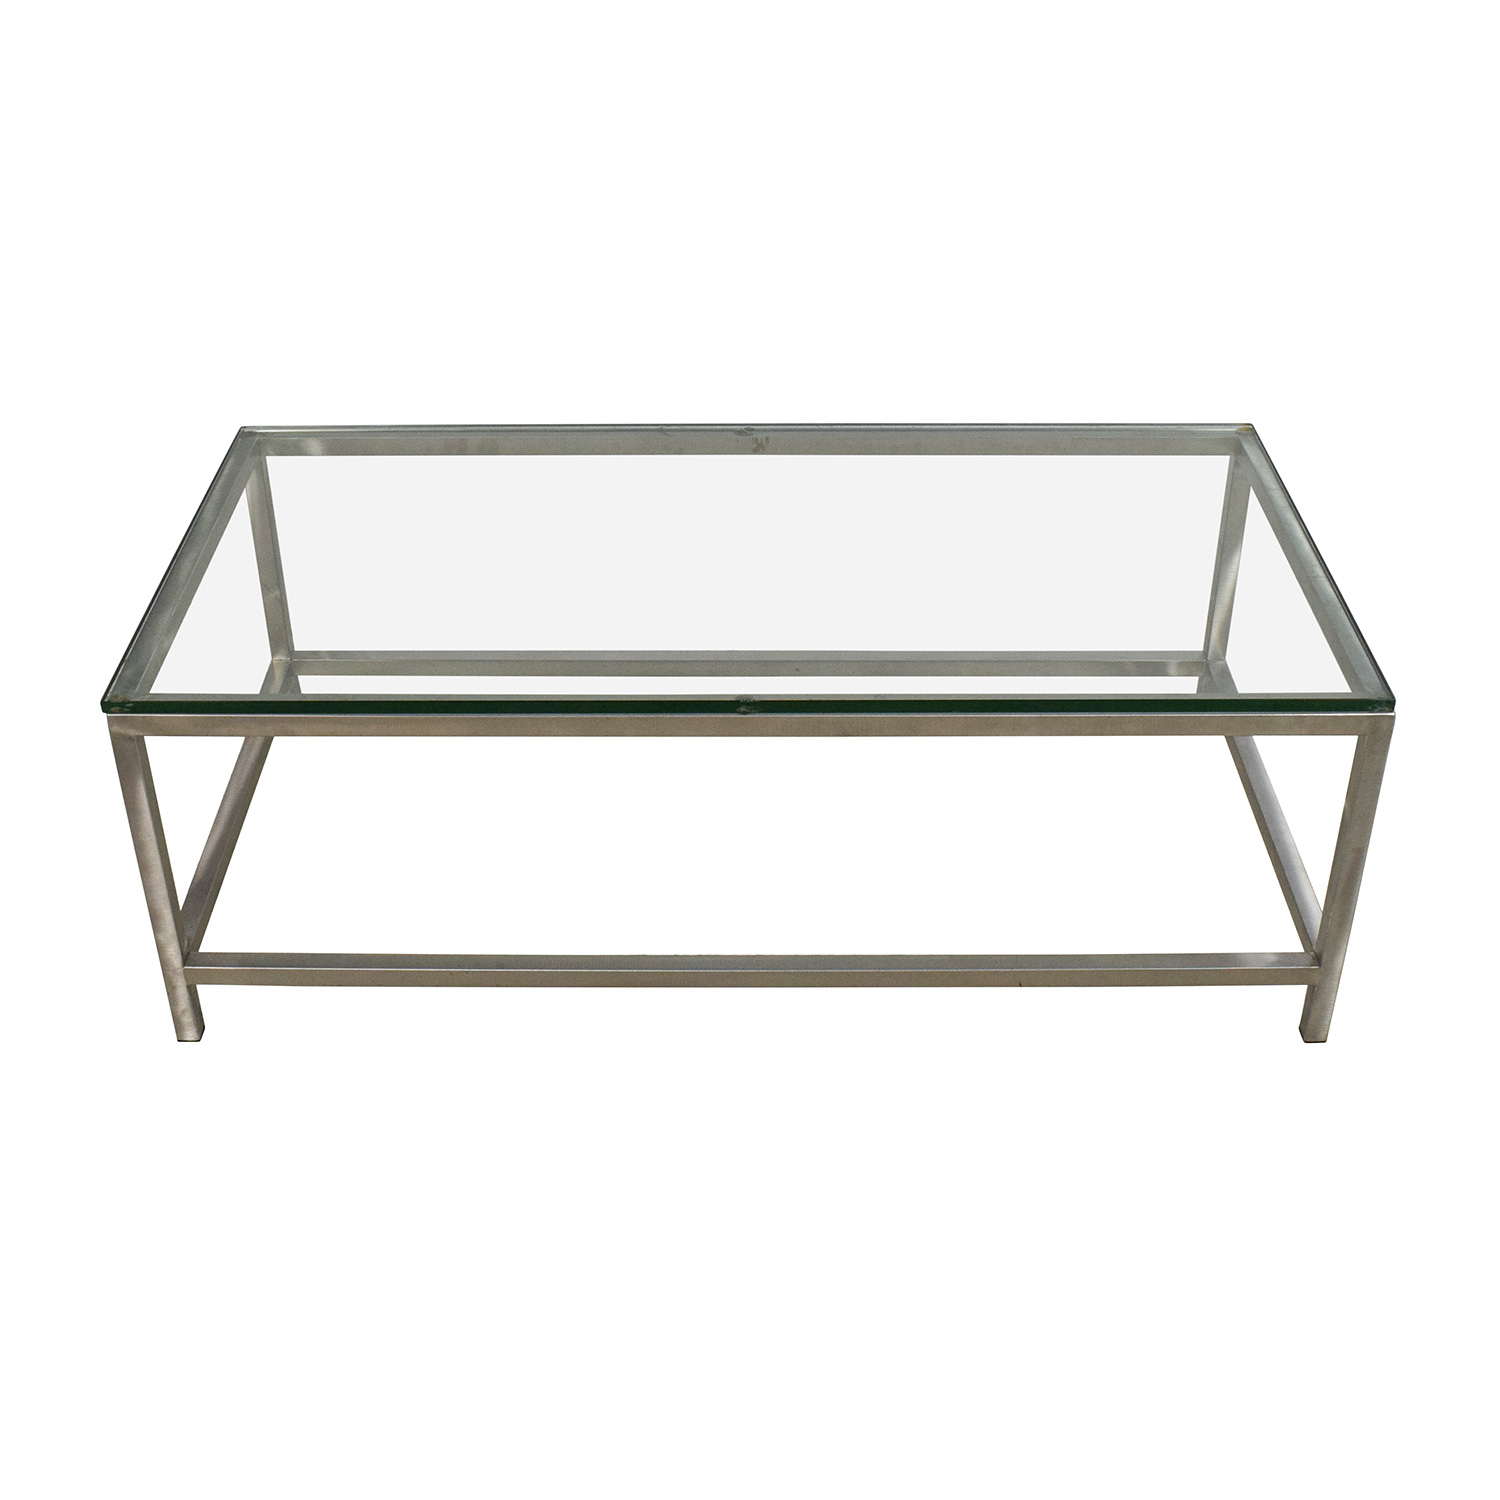 64% Off – Crate And Barrel Crate & Barrel Era Rectangular Glass Top Intended For Era Glass Console Tables (View 21 of 30)